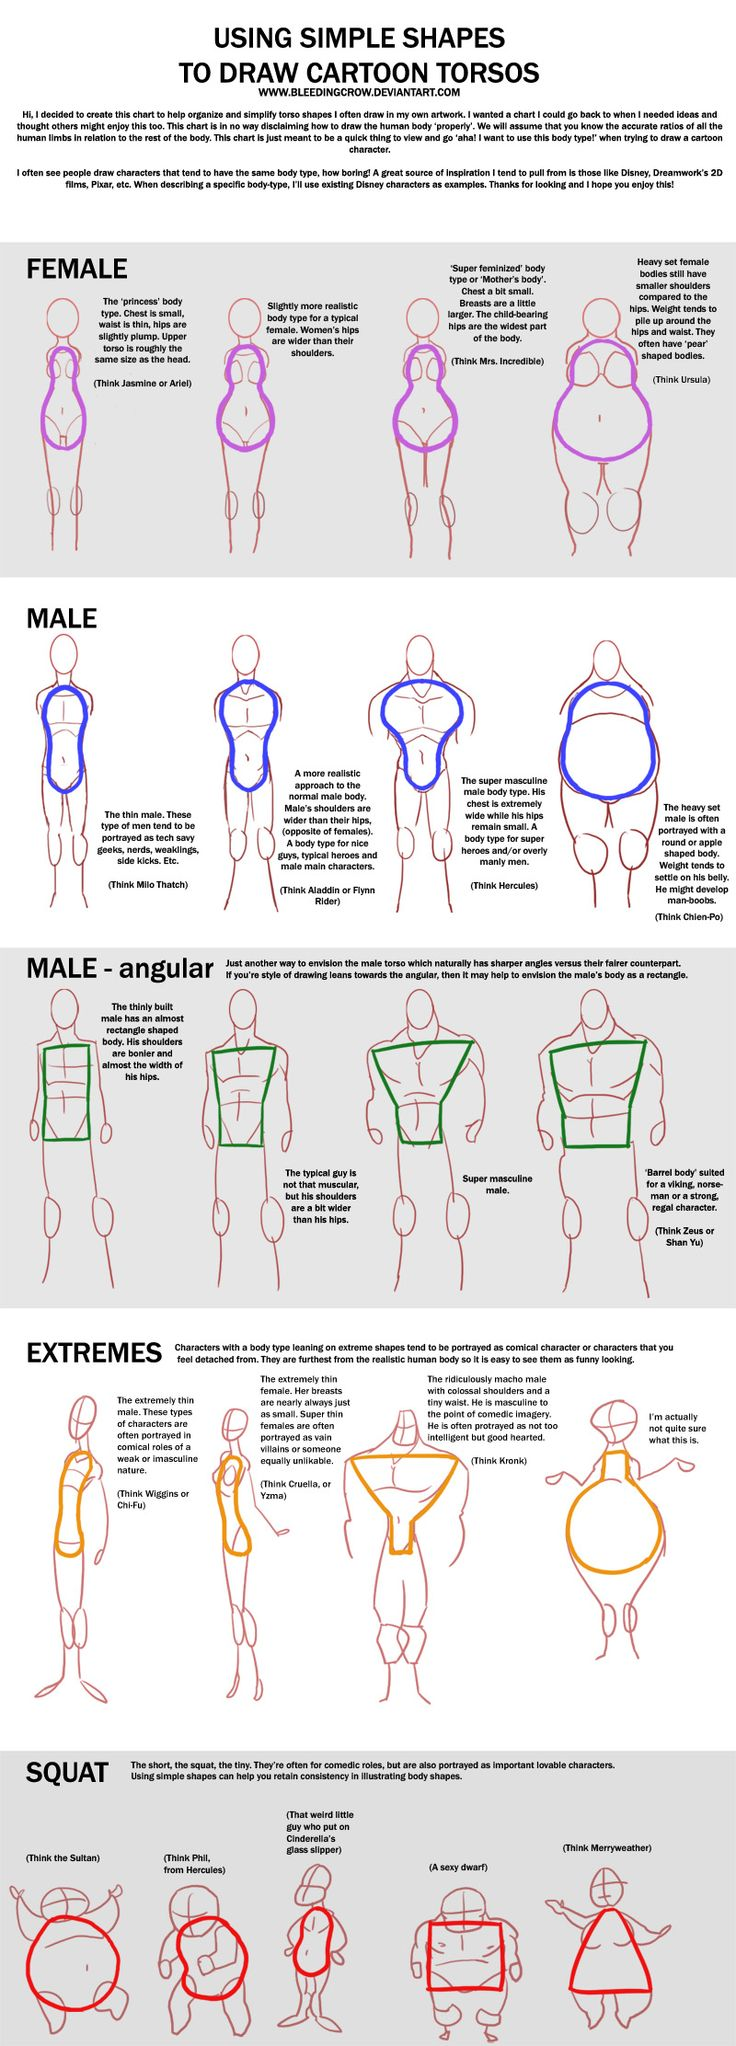 http://fc04.deviantart.net/fs70/f/2011/254/a/5/chart___cartoon_torso_by_bleedingcrow-d49i953.jpg                                                                                                                                                      Más